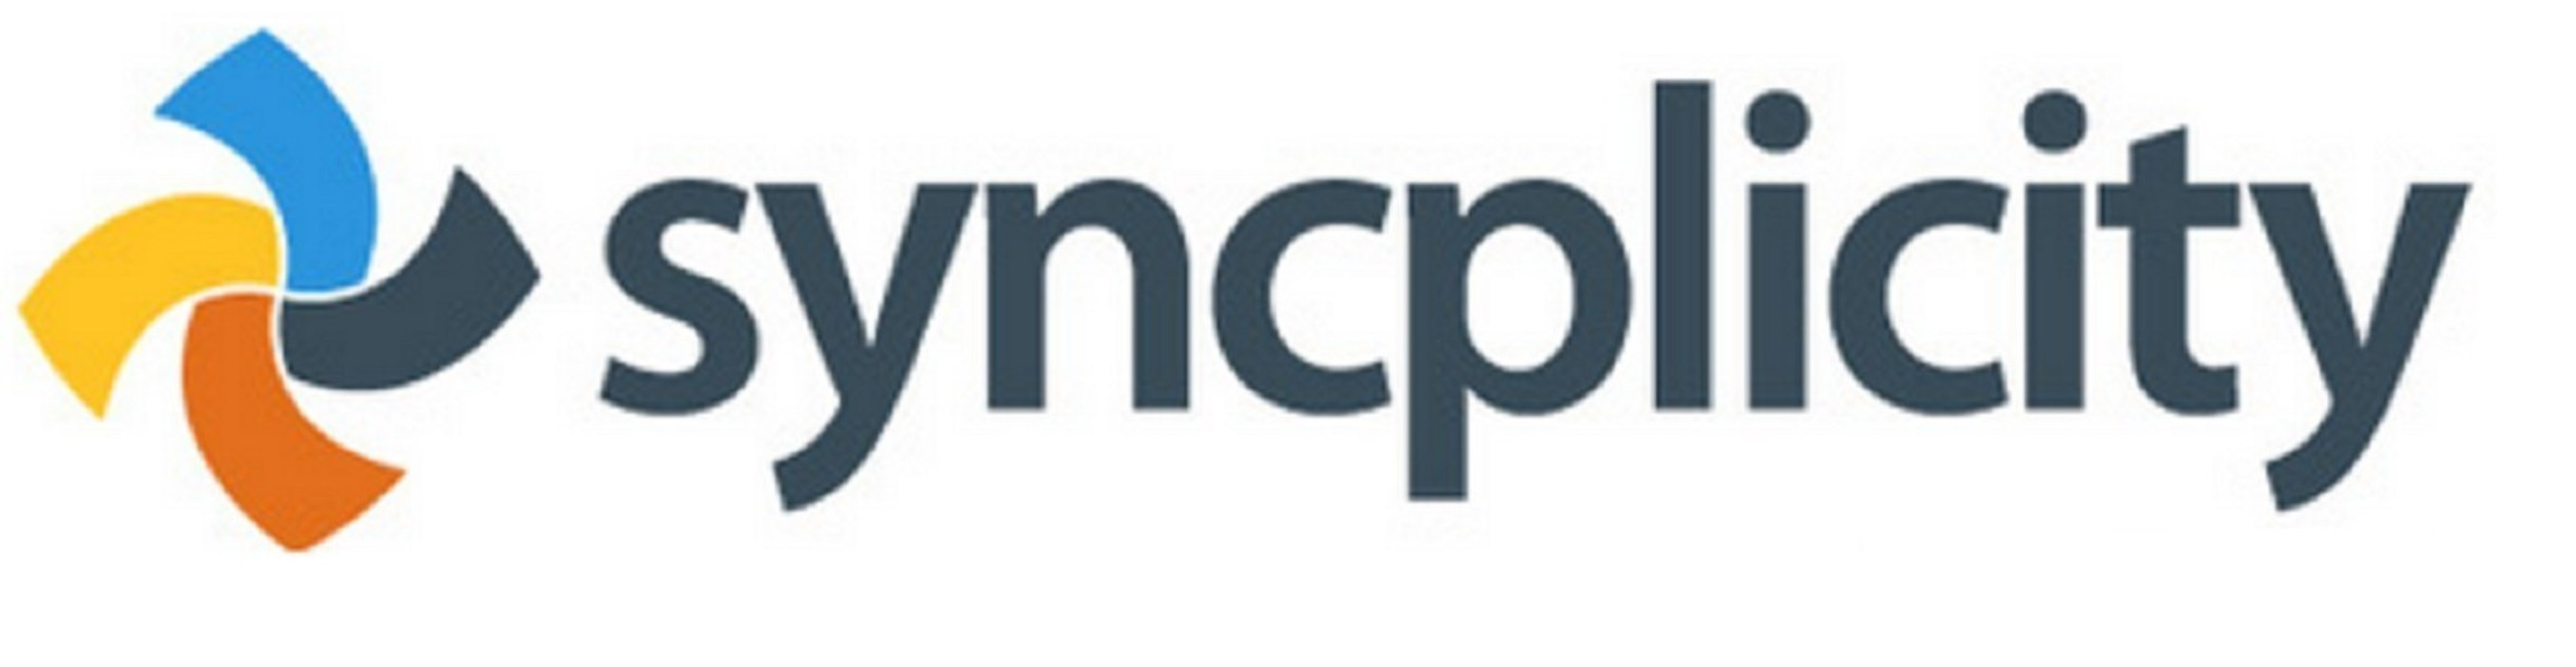 Syncplicity, a leading enterprise file sync and share provider